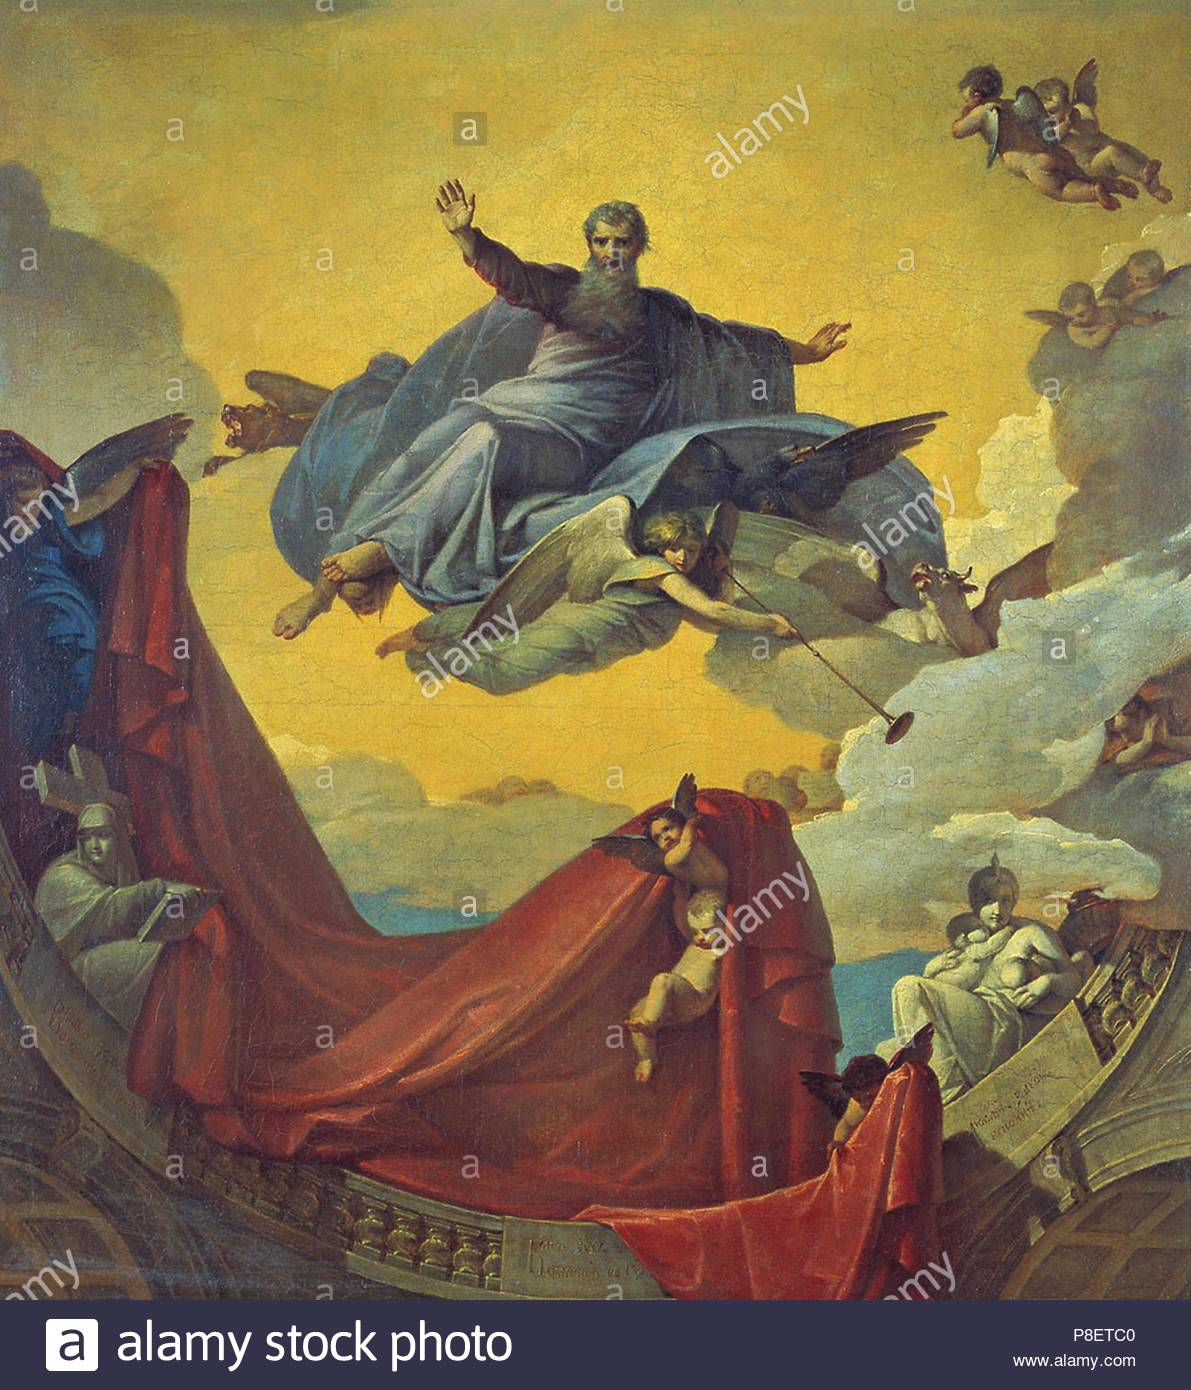 The Vision of the Prophet Ezekiel. Museum: State Tretyakov Gallery, Moscow. - Stock Image